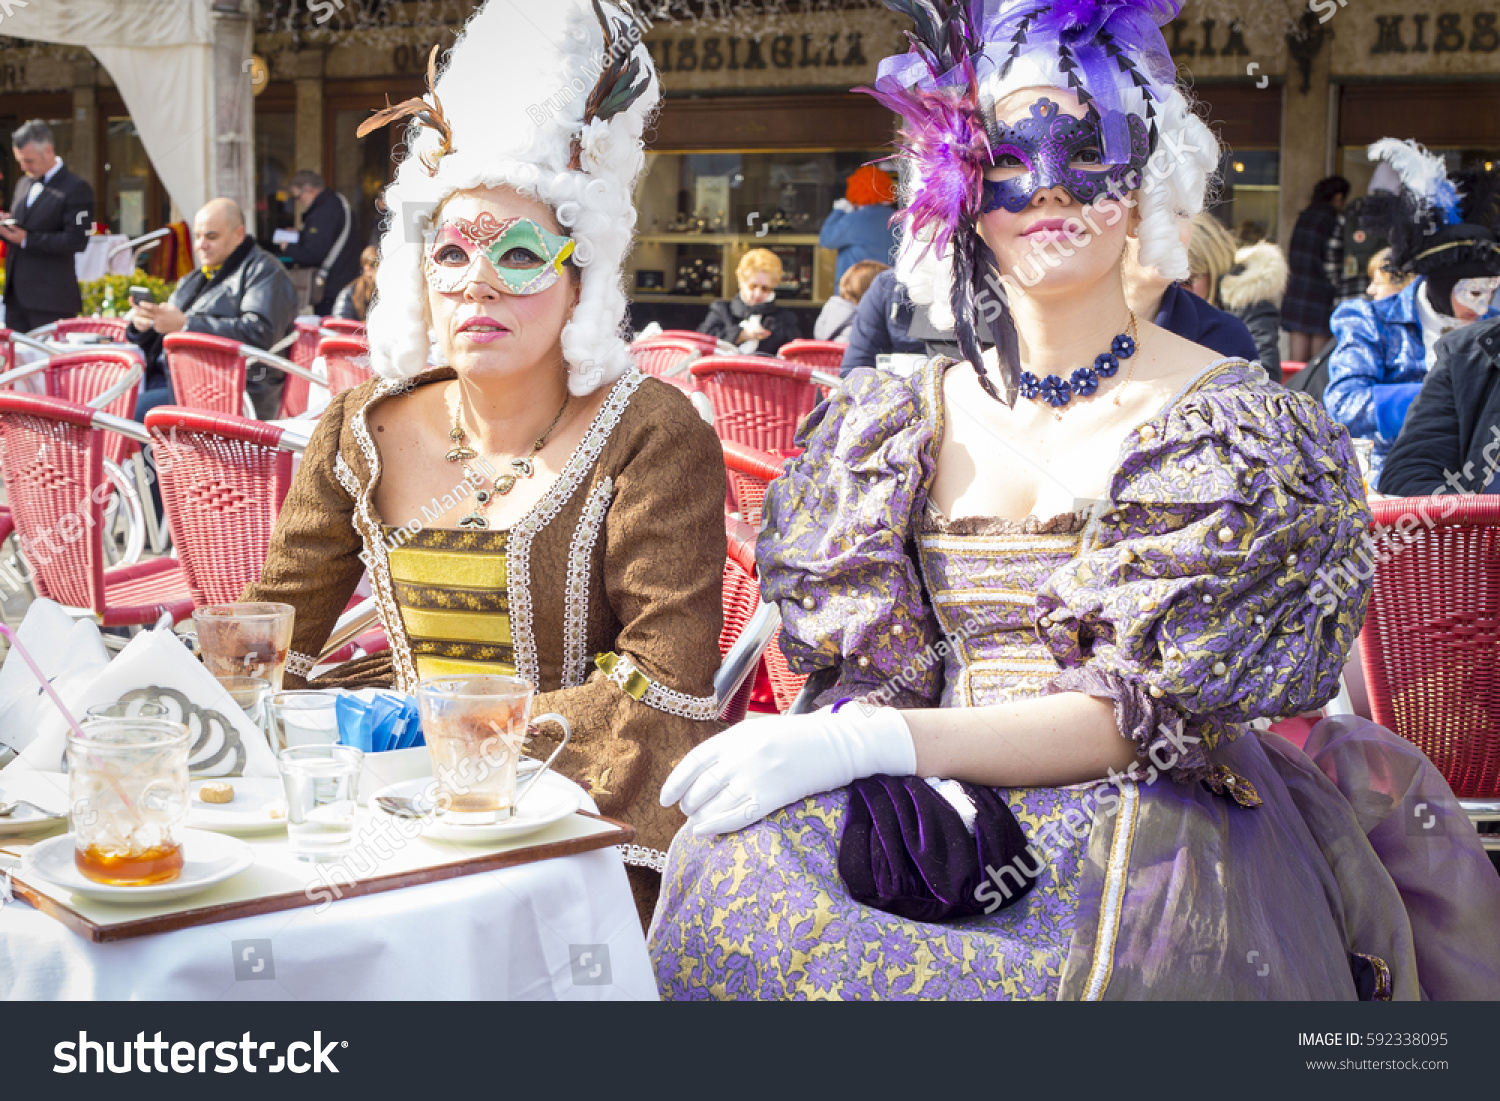 Venice italy 26022017 unidentified people carnival stock for Venice craft fair 2017